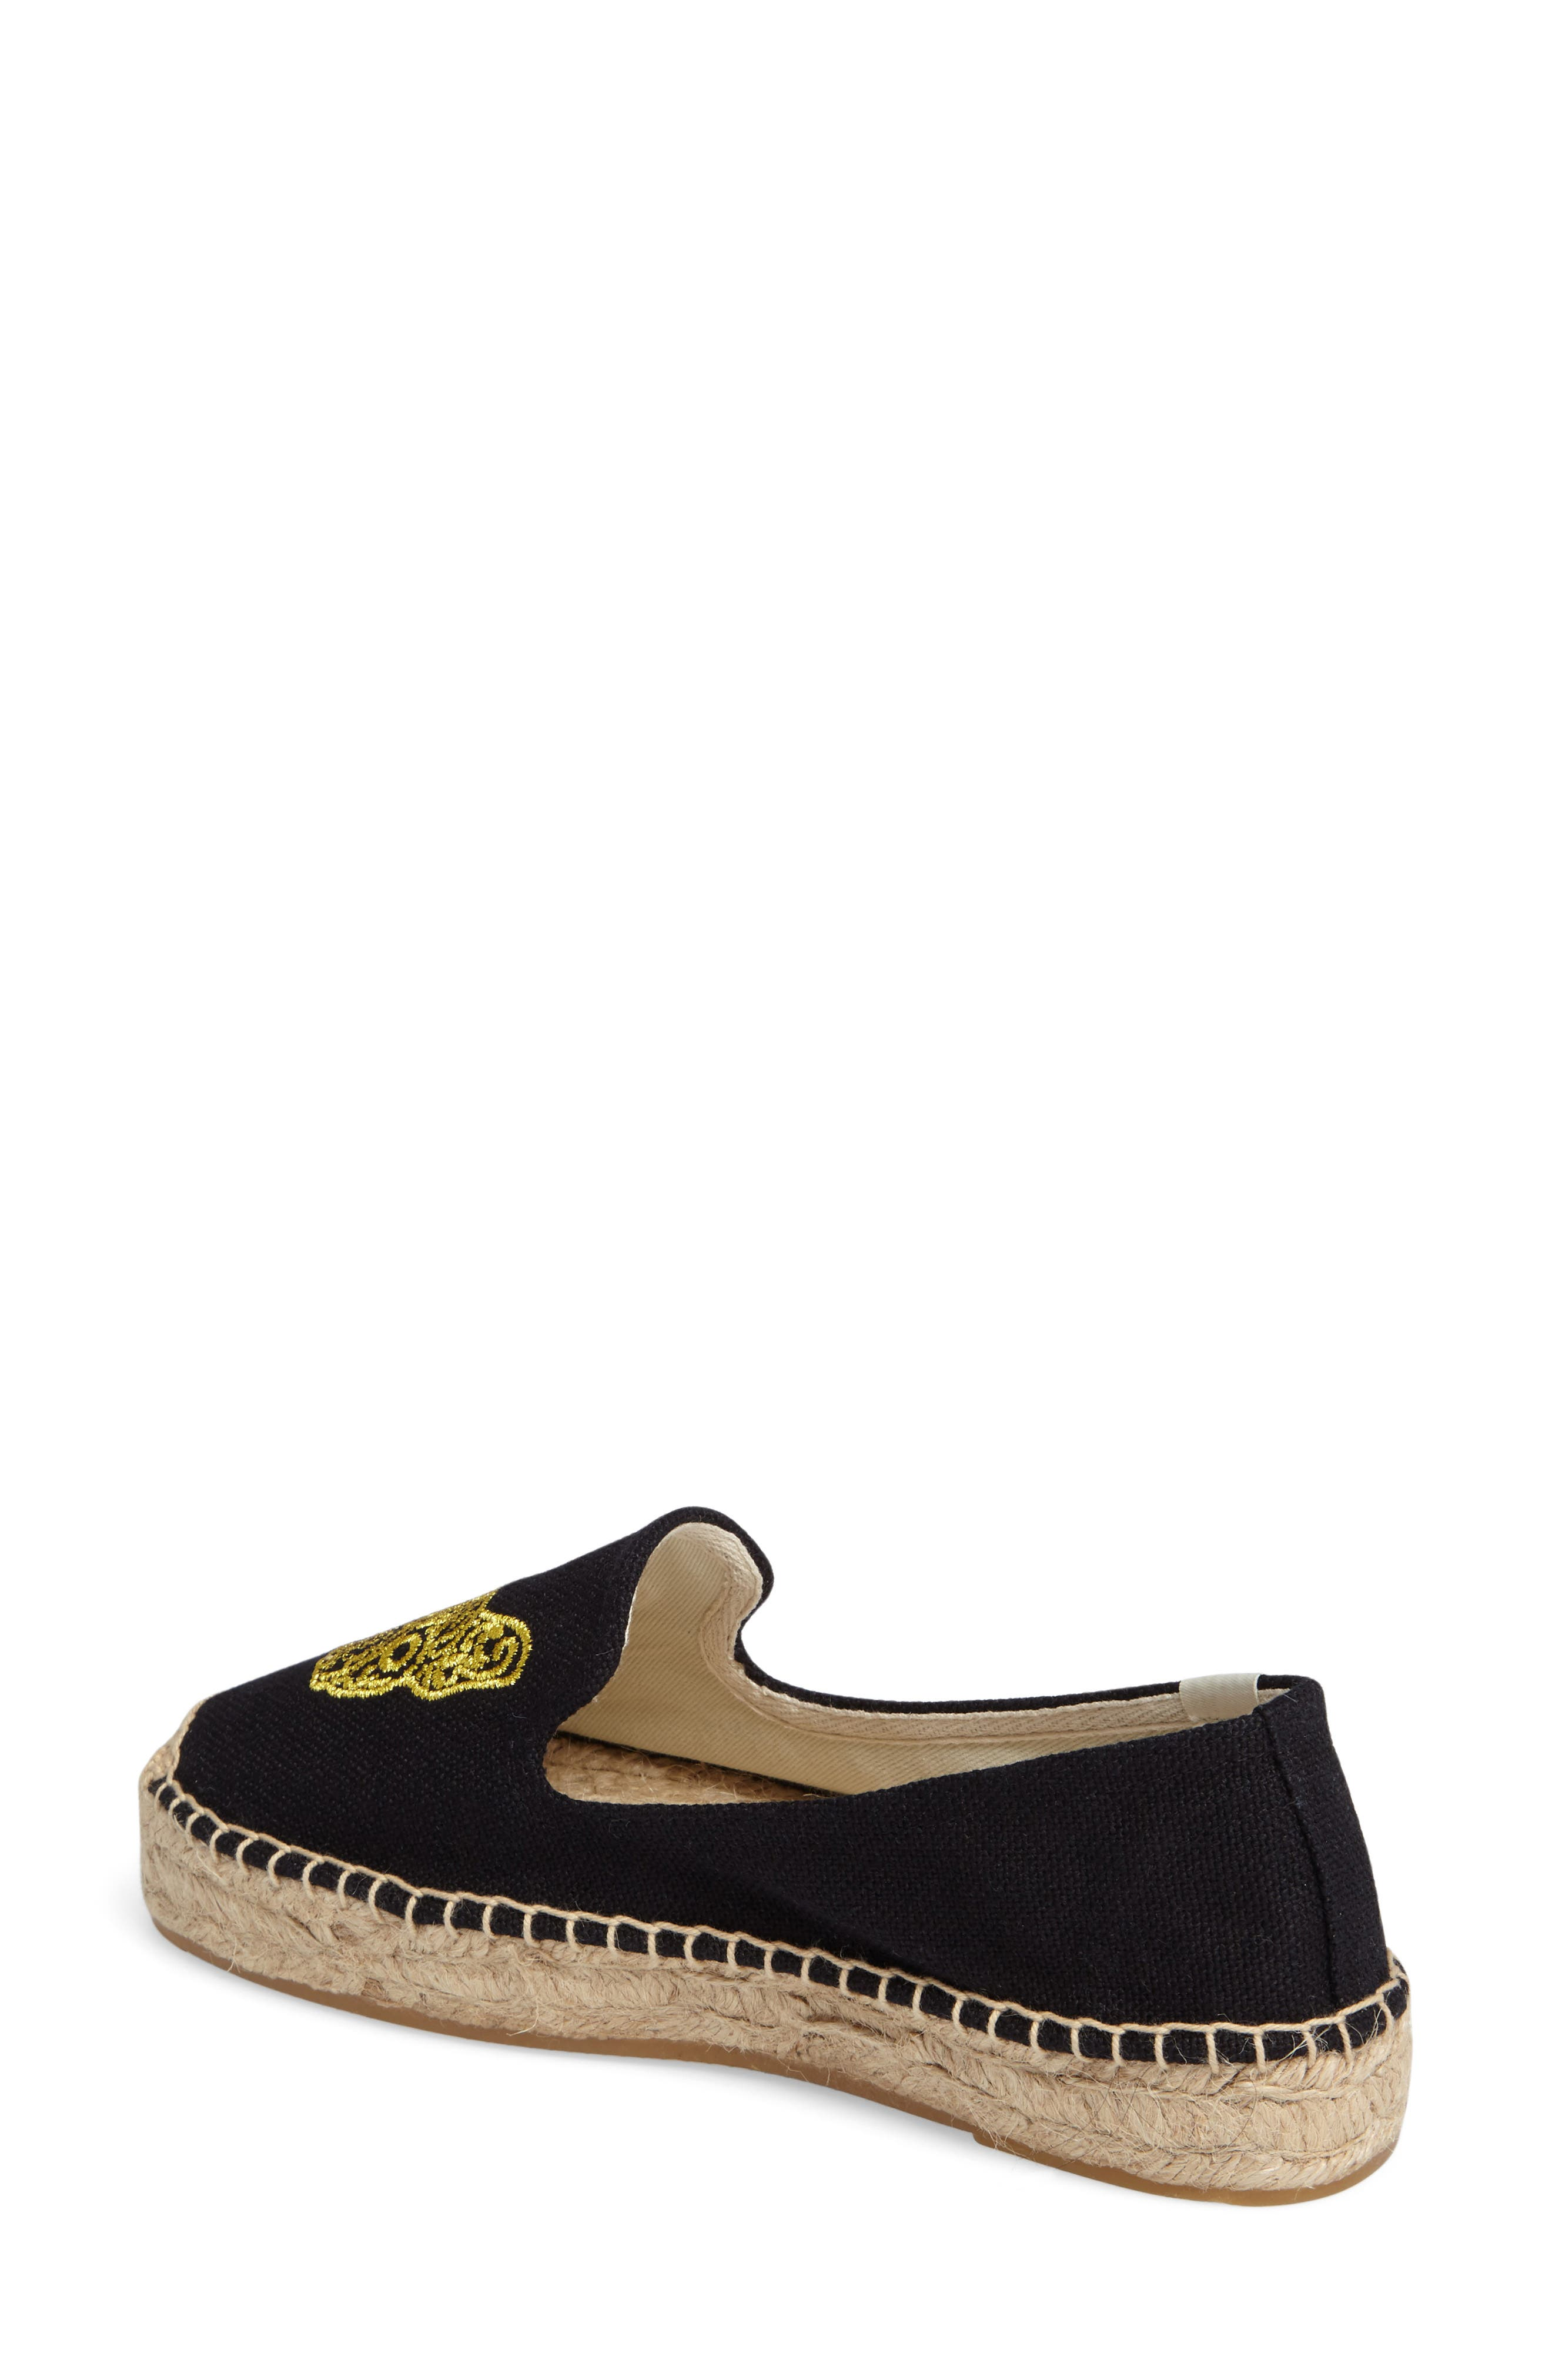 Frenchie Espadrille Loafer,                             Alternate thumbnail 2, color,                             006